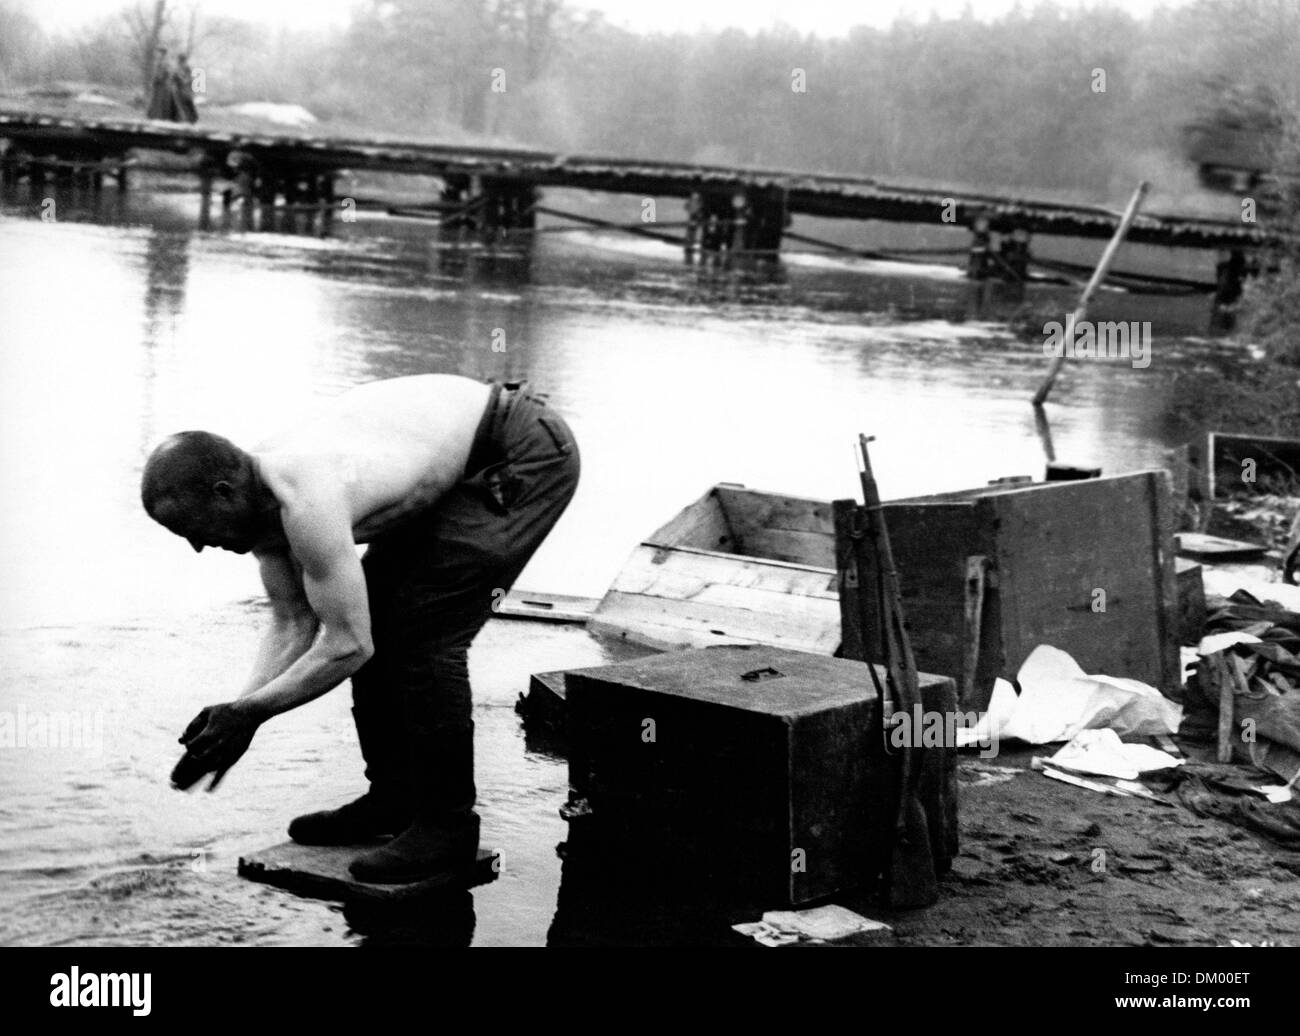 End of the war in Berlin in 1945 - A soldier washes himself in the Spree River at dawn, having put his rifle aside. Photo: Berliner Verlag/Archiv - Stock Image